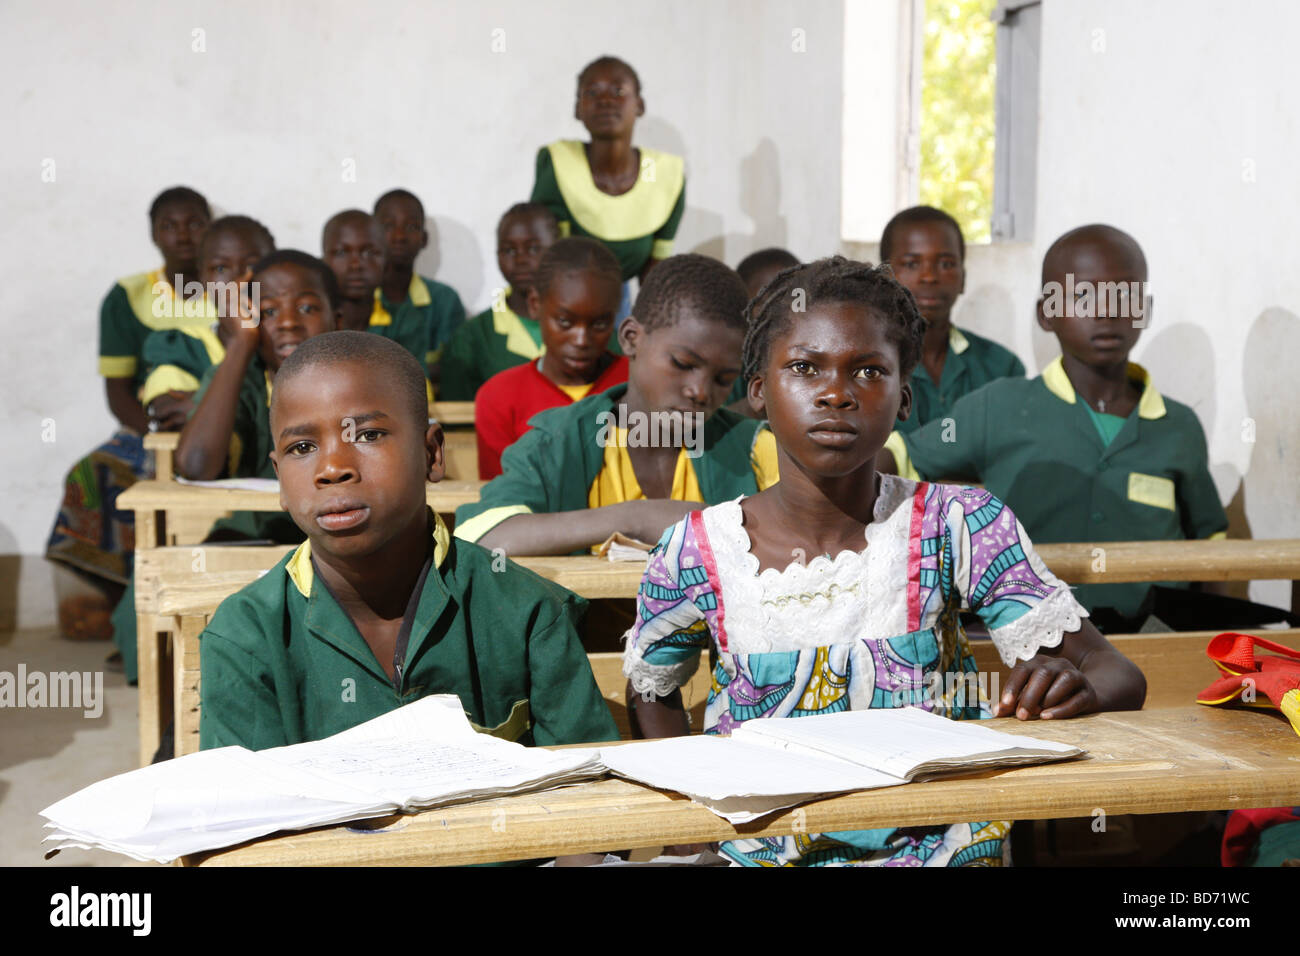 Girl without uniforms with classmates in uniform, during lessons, Mora, Cameroon, Africa - Stock Image